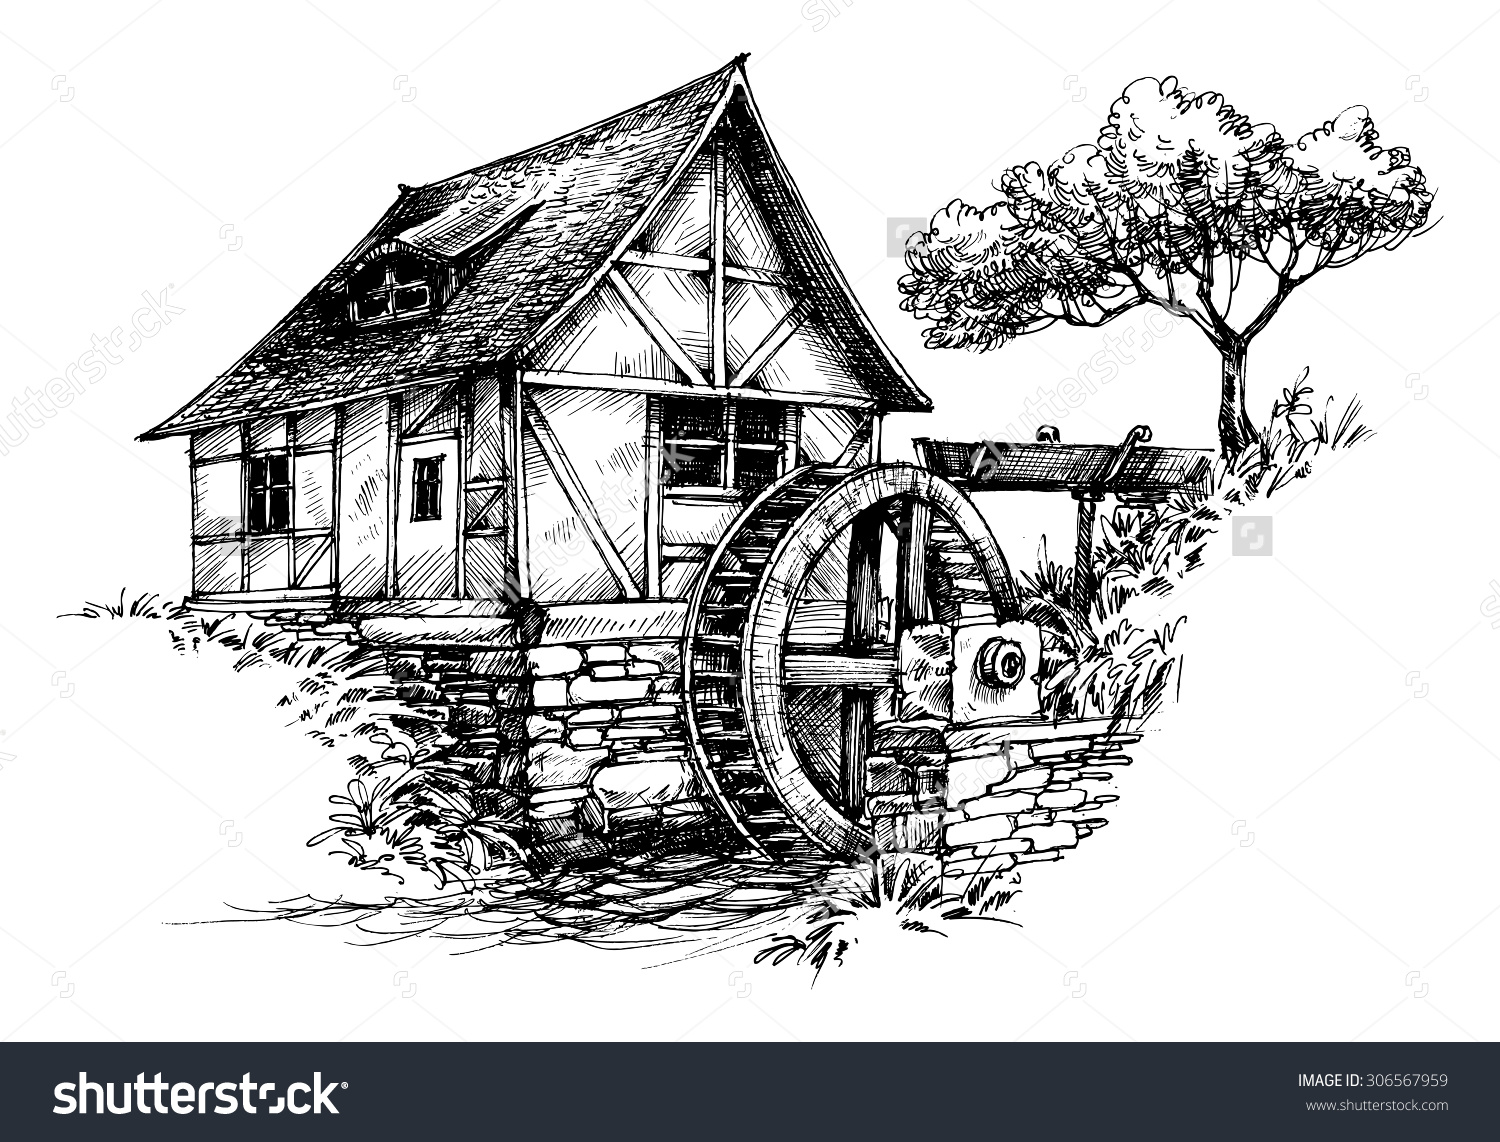 Old Water Mill Sketch Stock Vector 306567959.